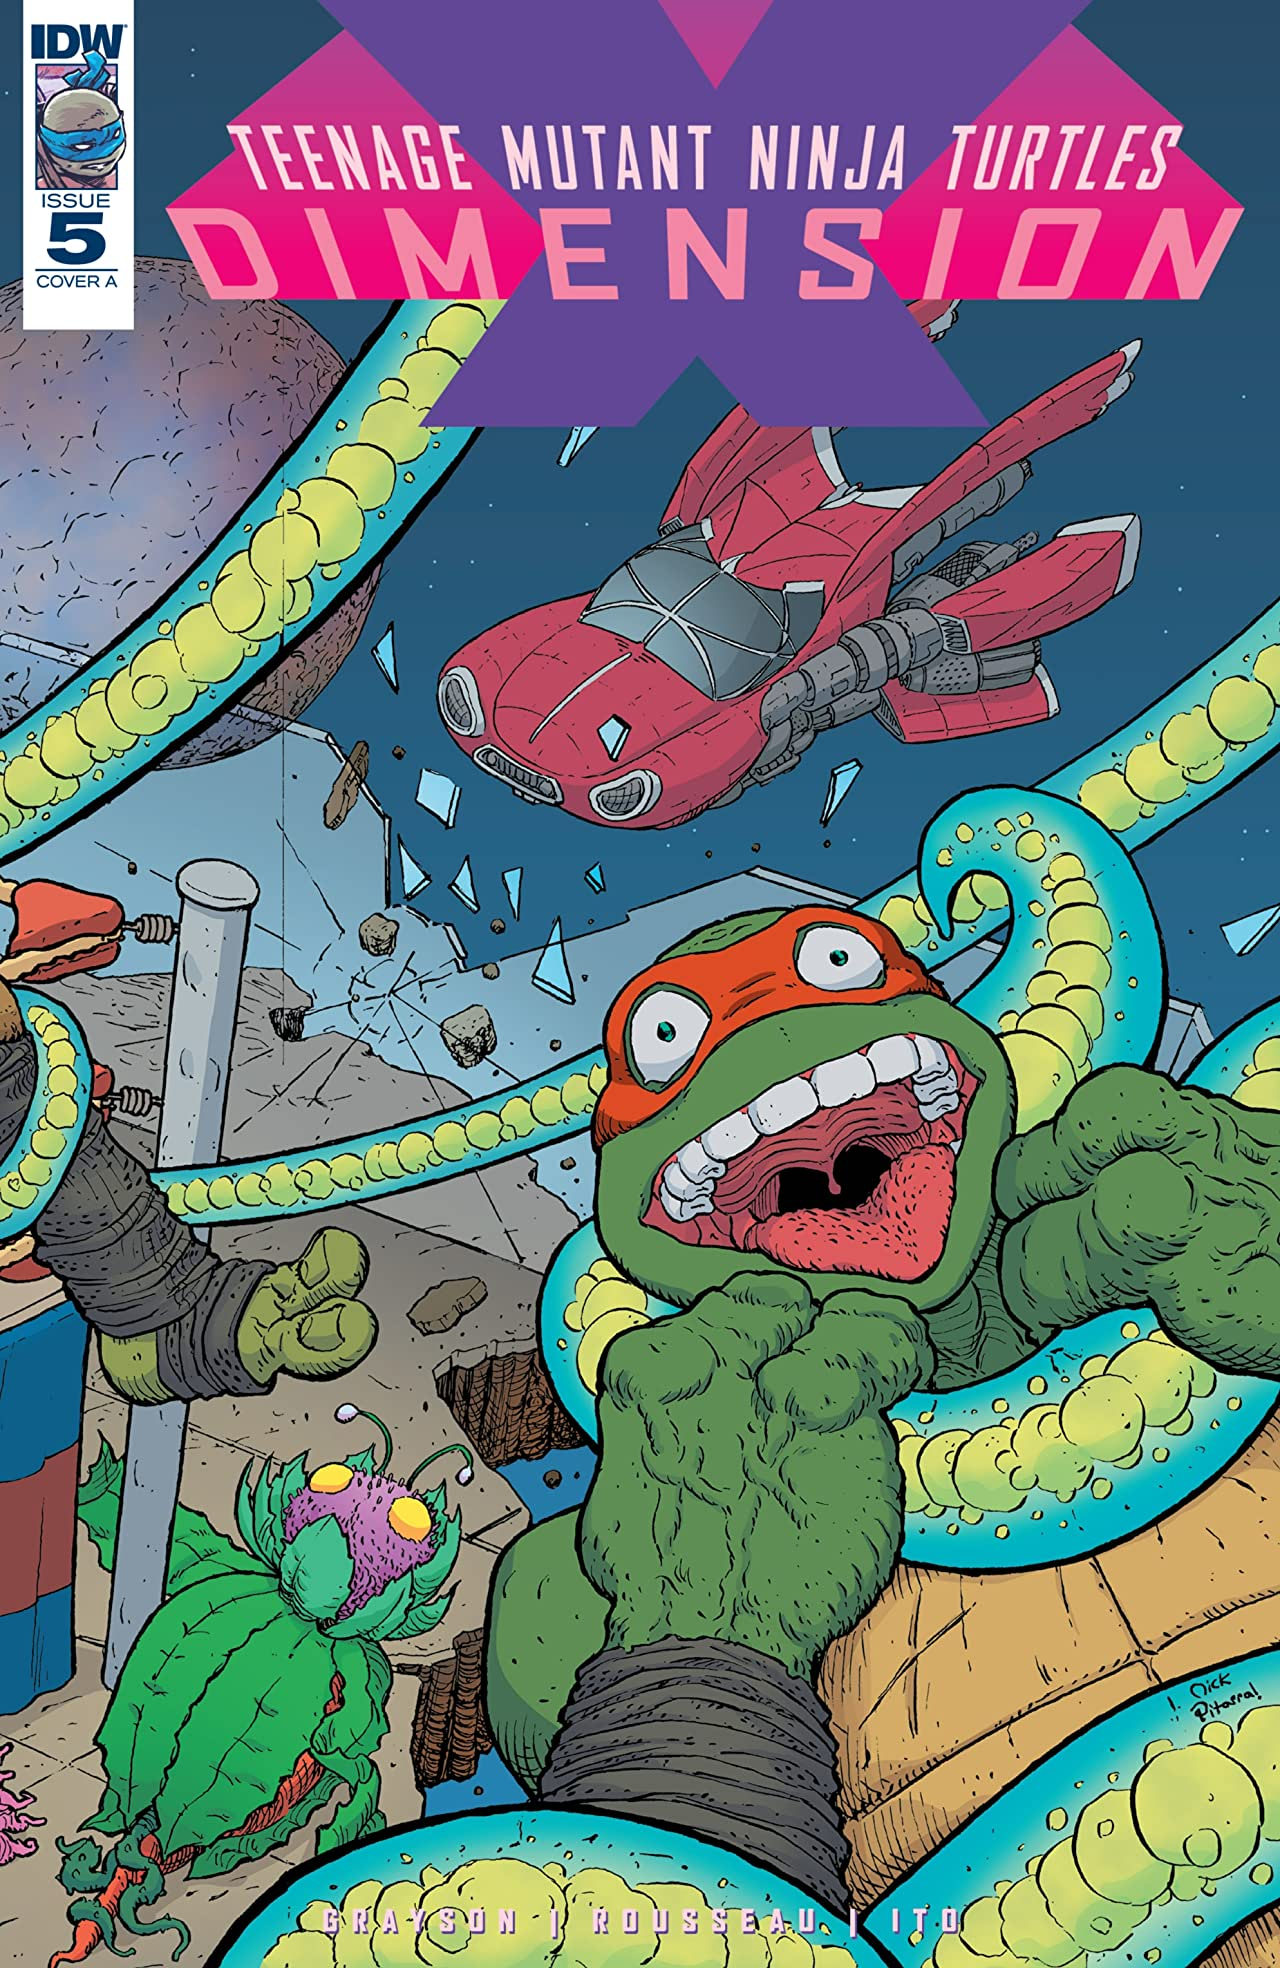 Teenage Mutant Ninja Turtles: Dimension X #5